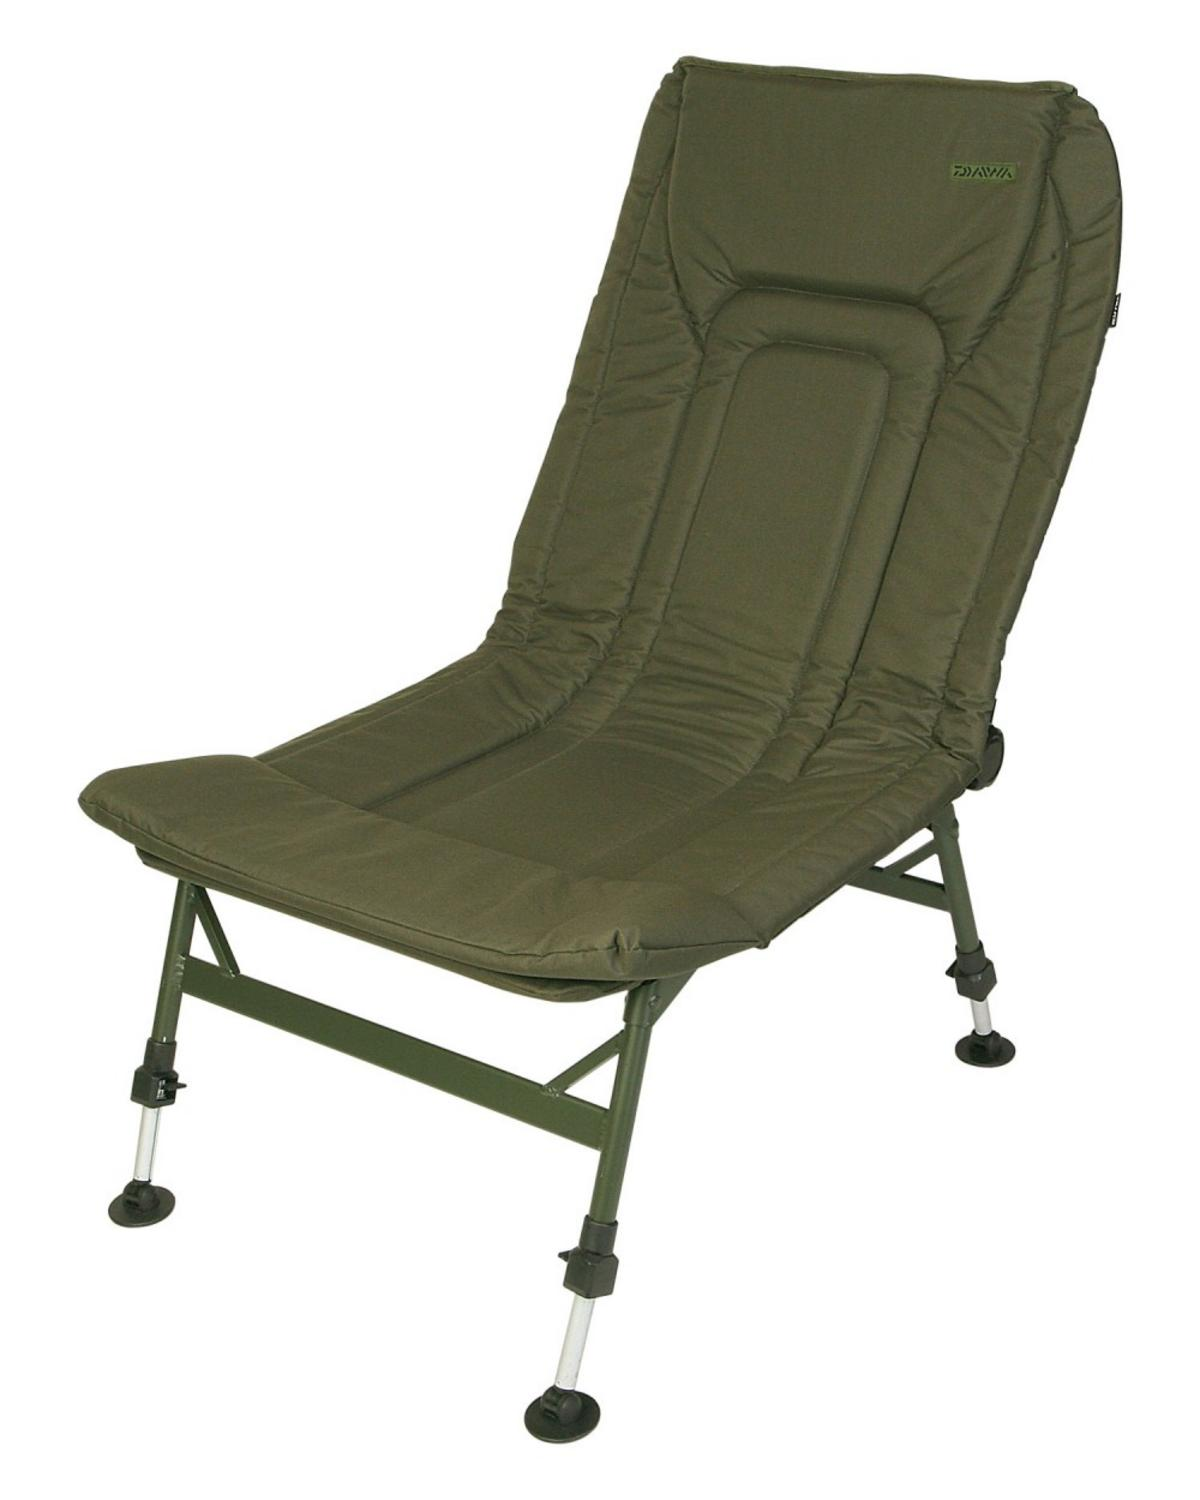 DAIWA MISSION CARP CHAIR Model No. DMCC1